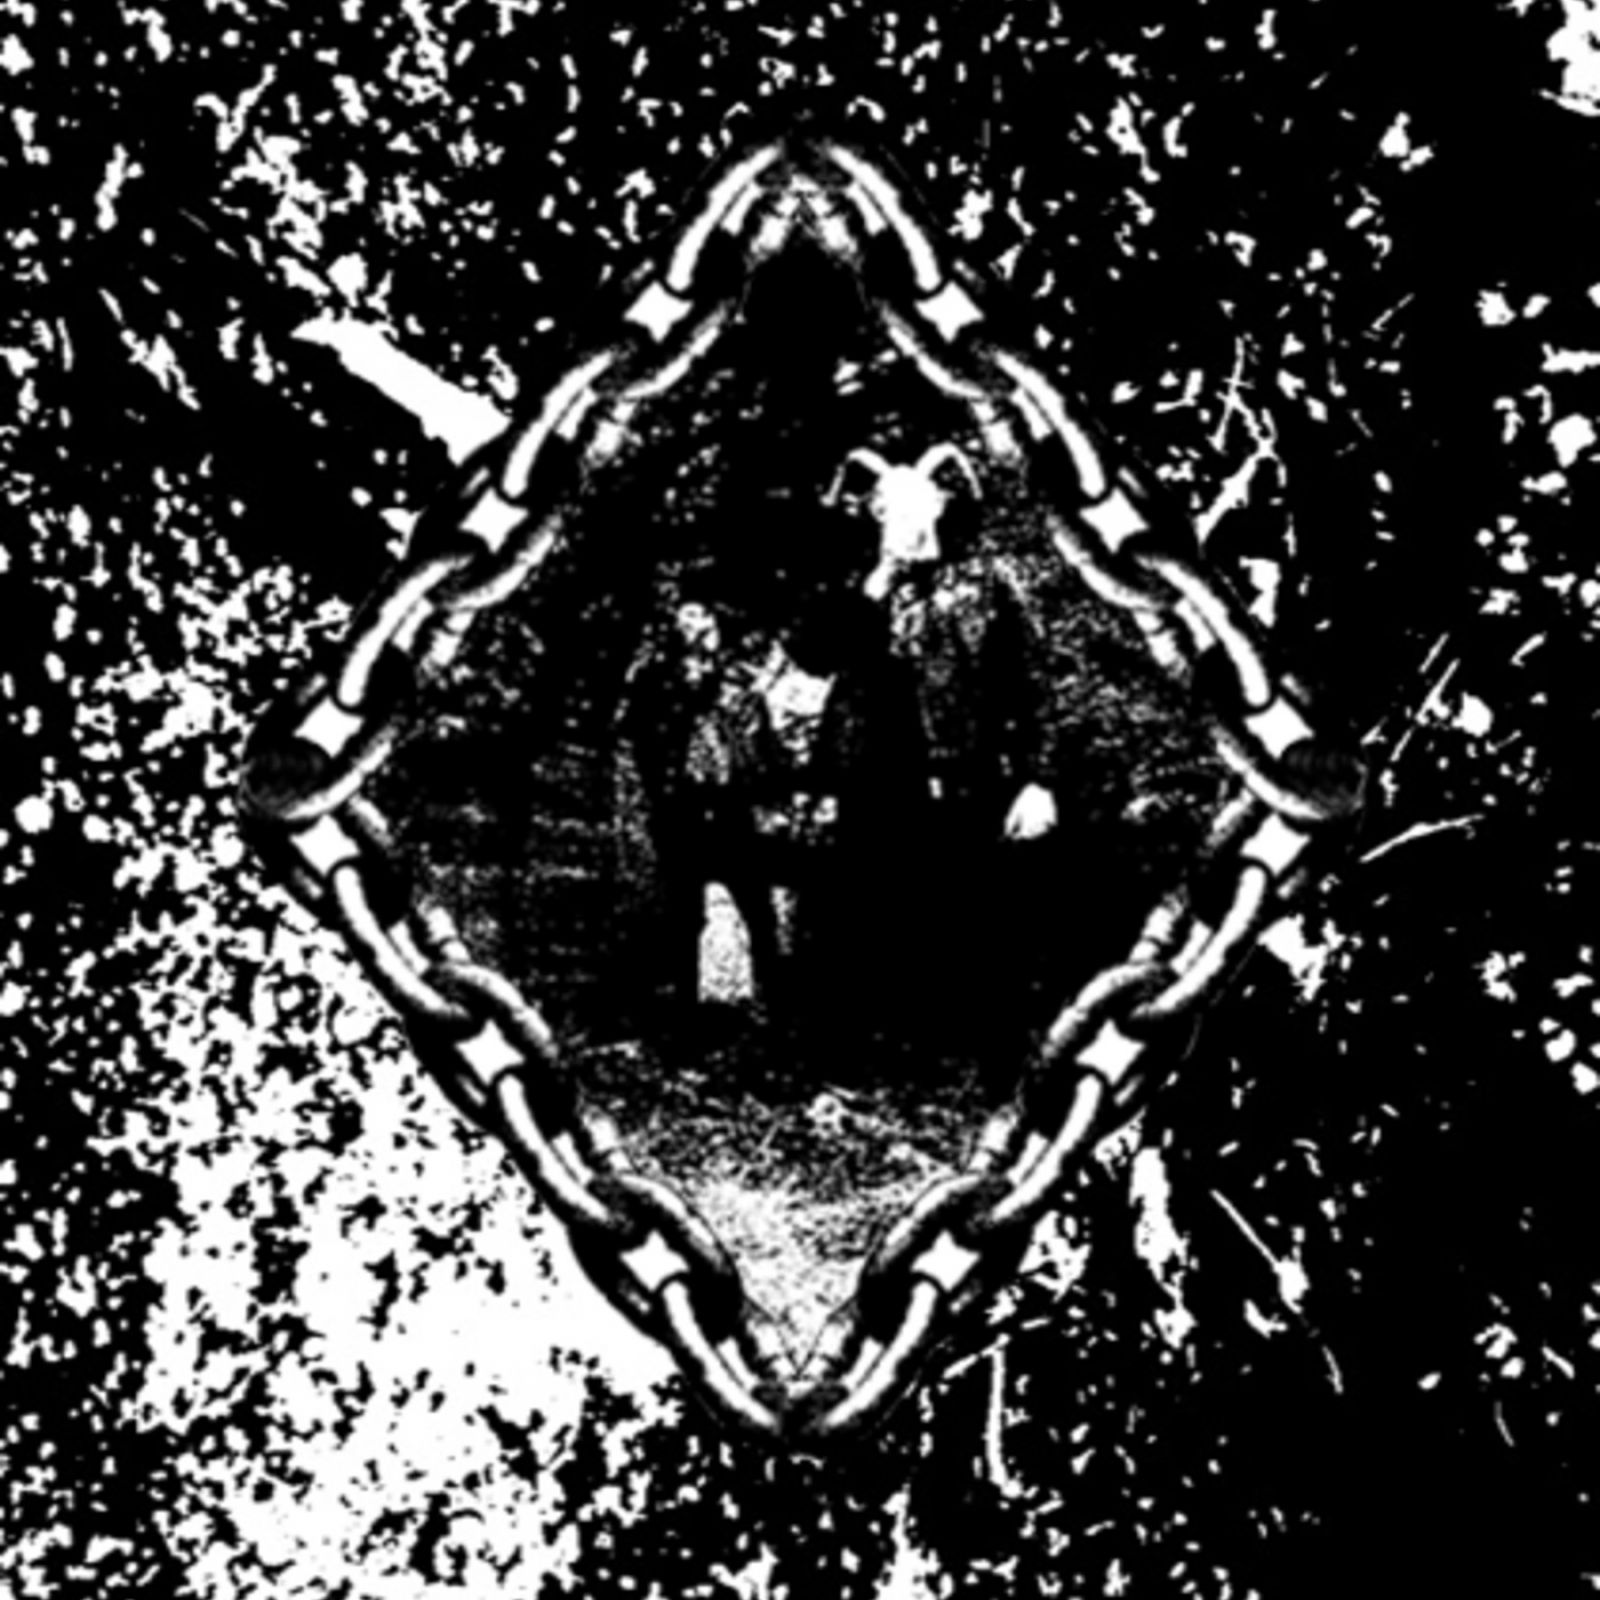 Review for Sermon of Flames - Heralds of the Untruth